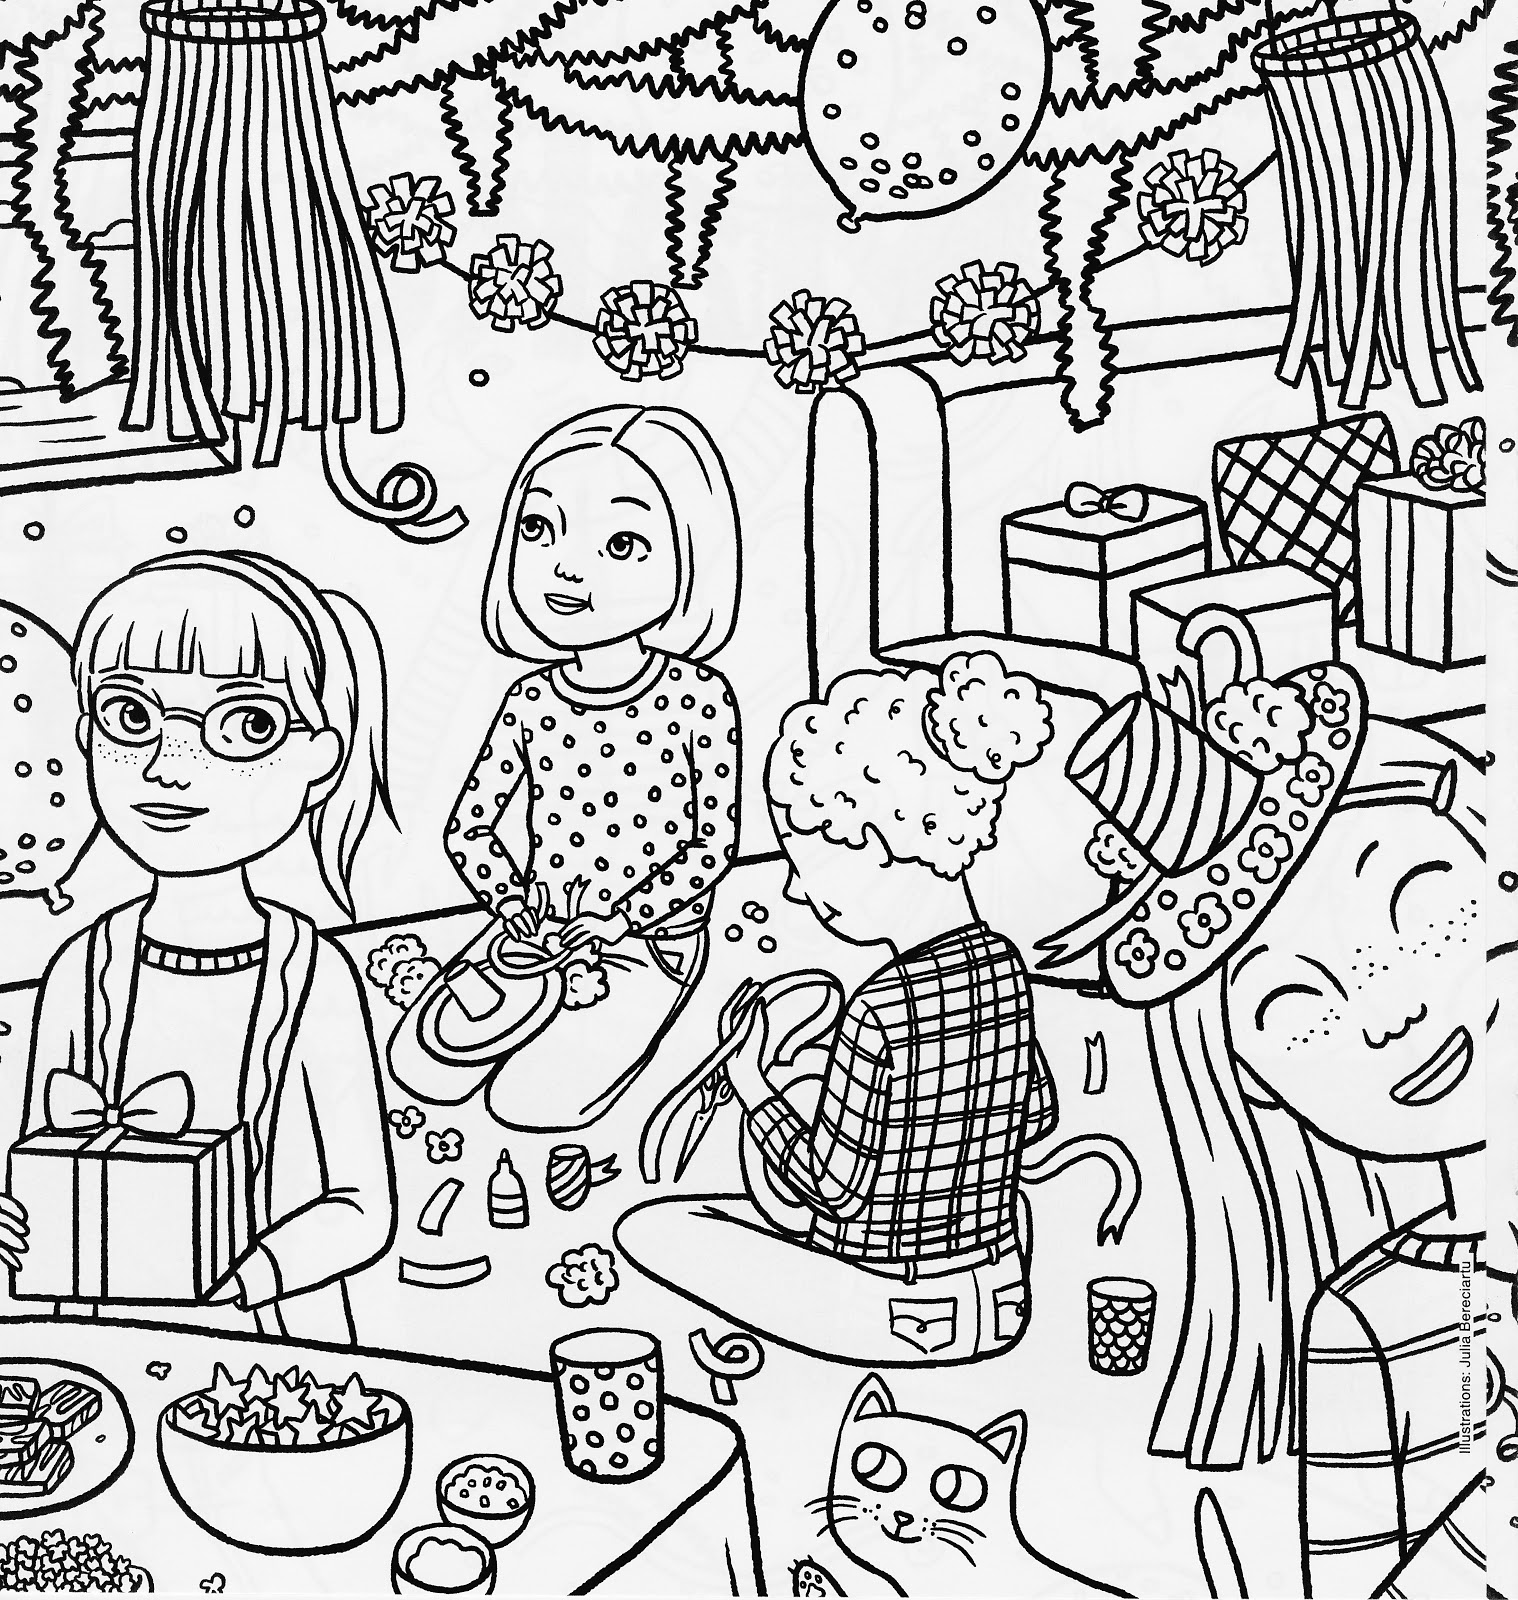 american girl coloring page american girl doll courtney moore giveaway and coloring sheet page american girl coloring